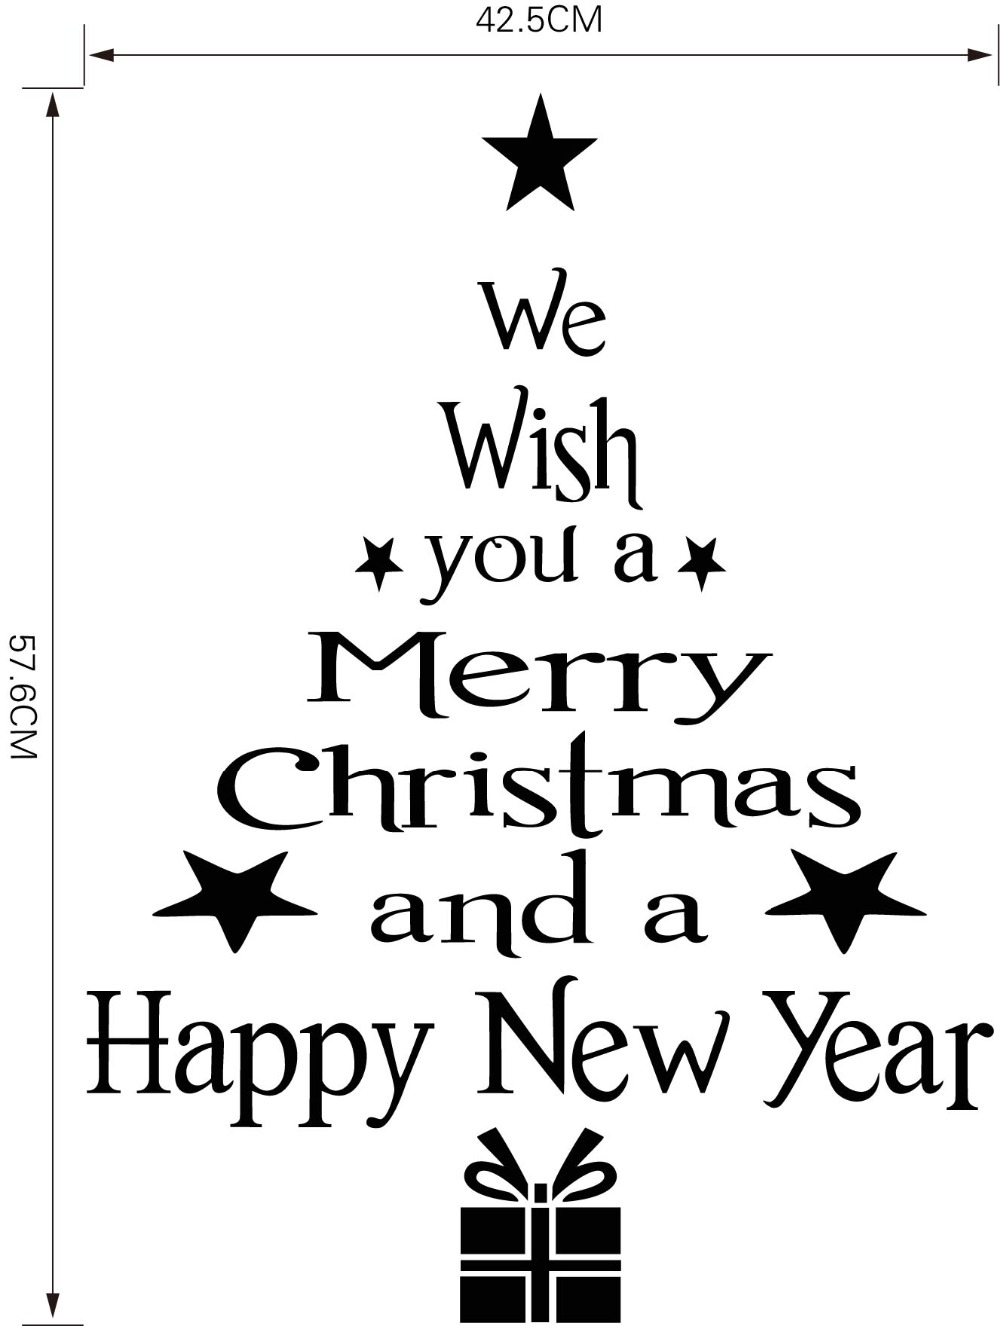 Home Decor Wall Stickers Merry Christmas Happy New Year Best Wishes Decals White Black Red Color Blessings Quotes In From